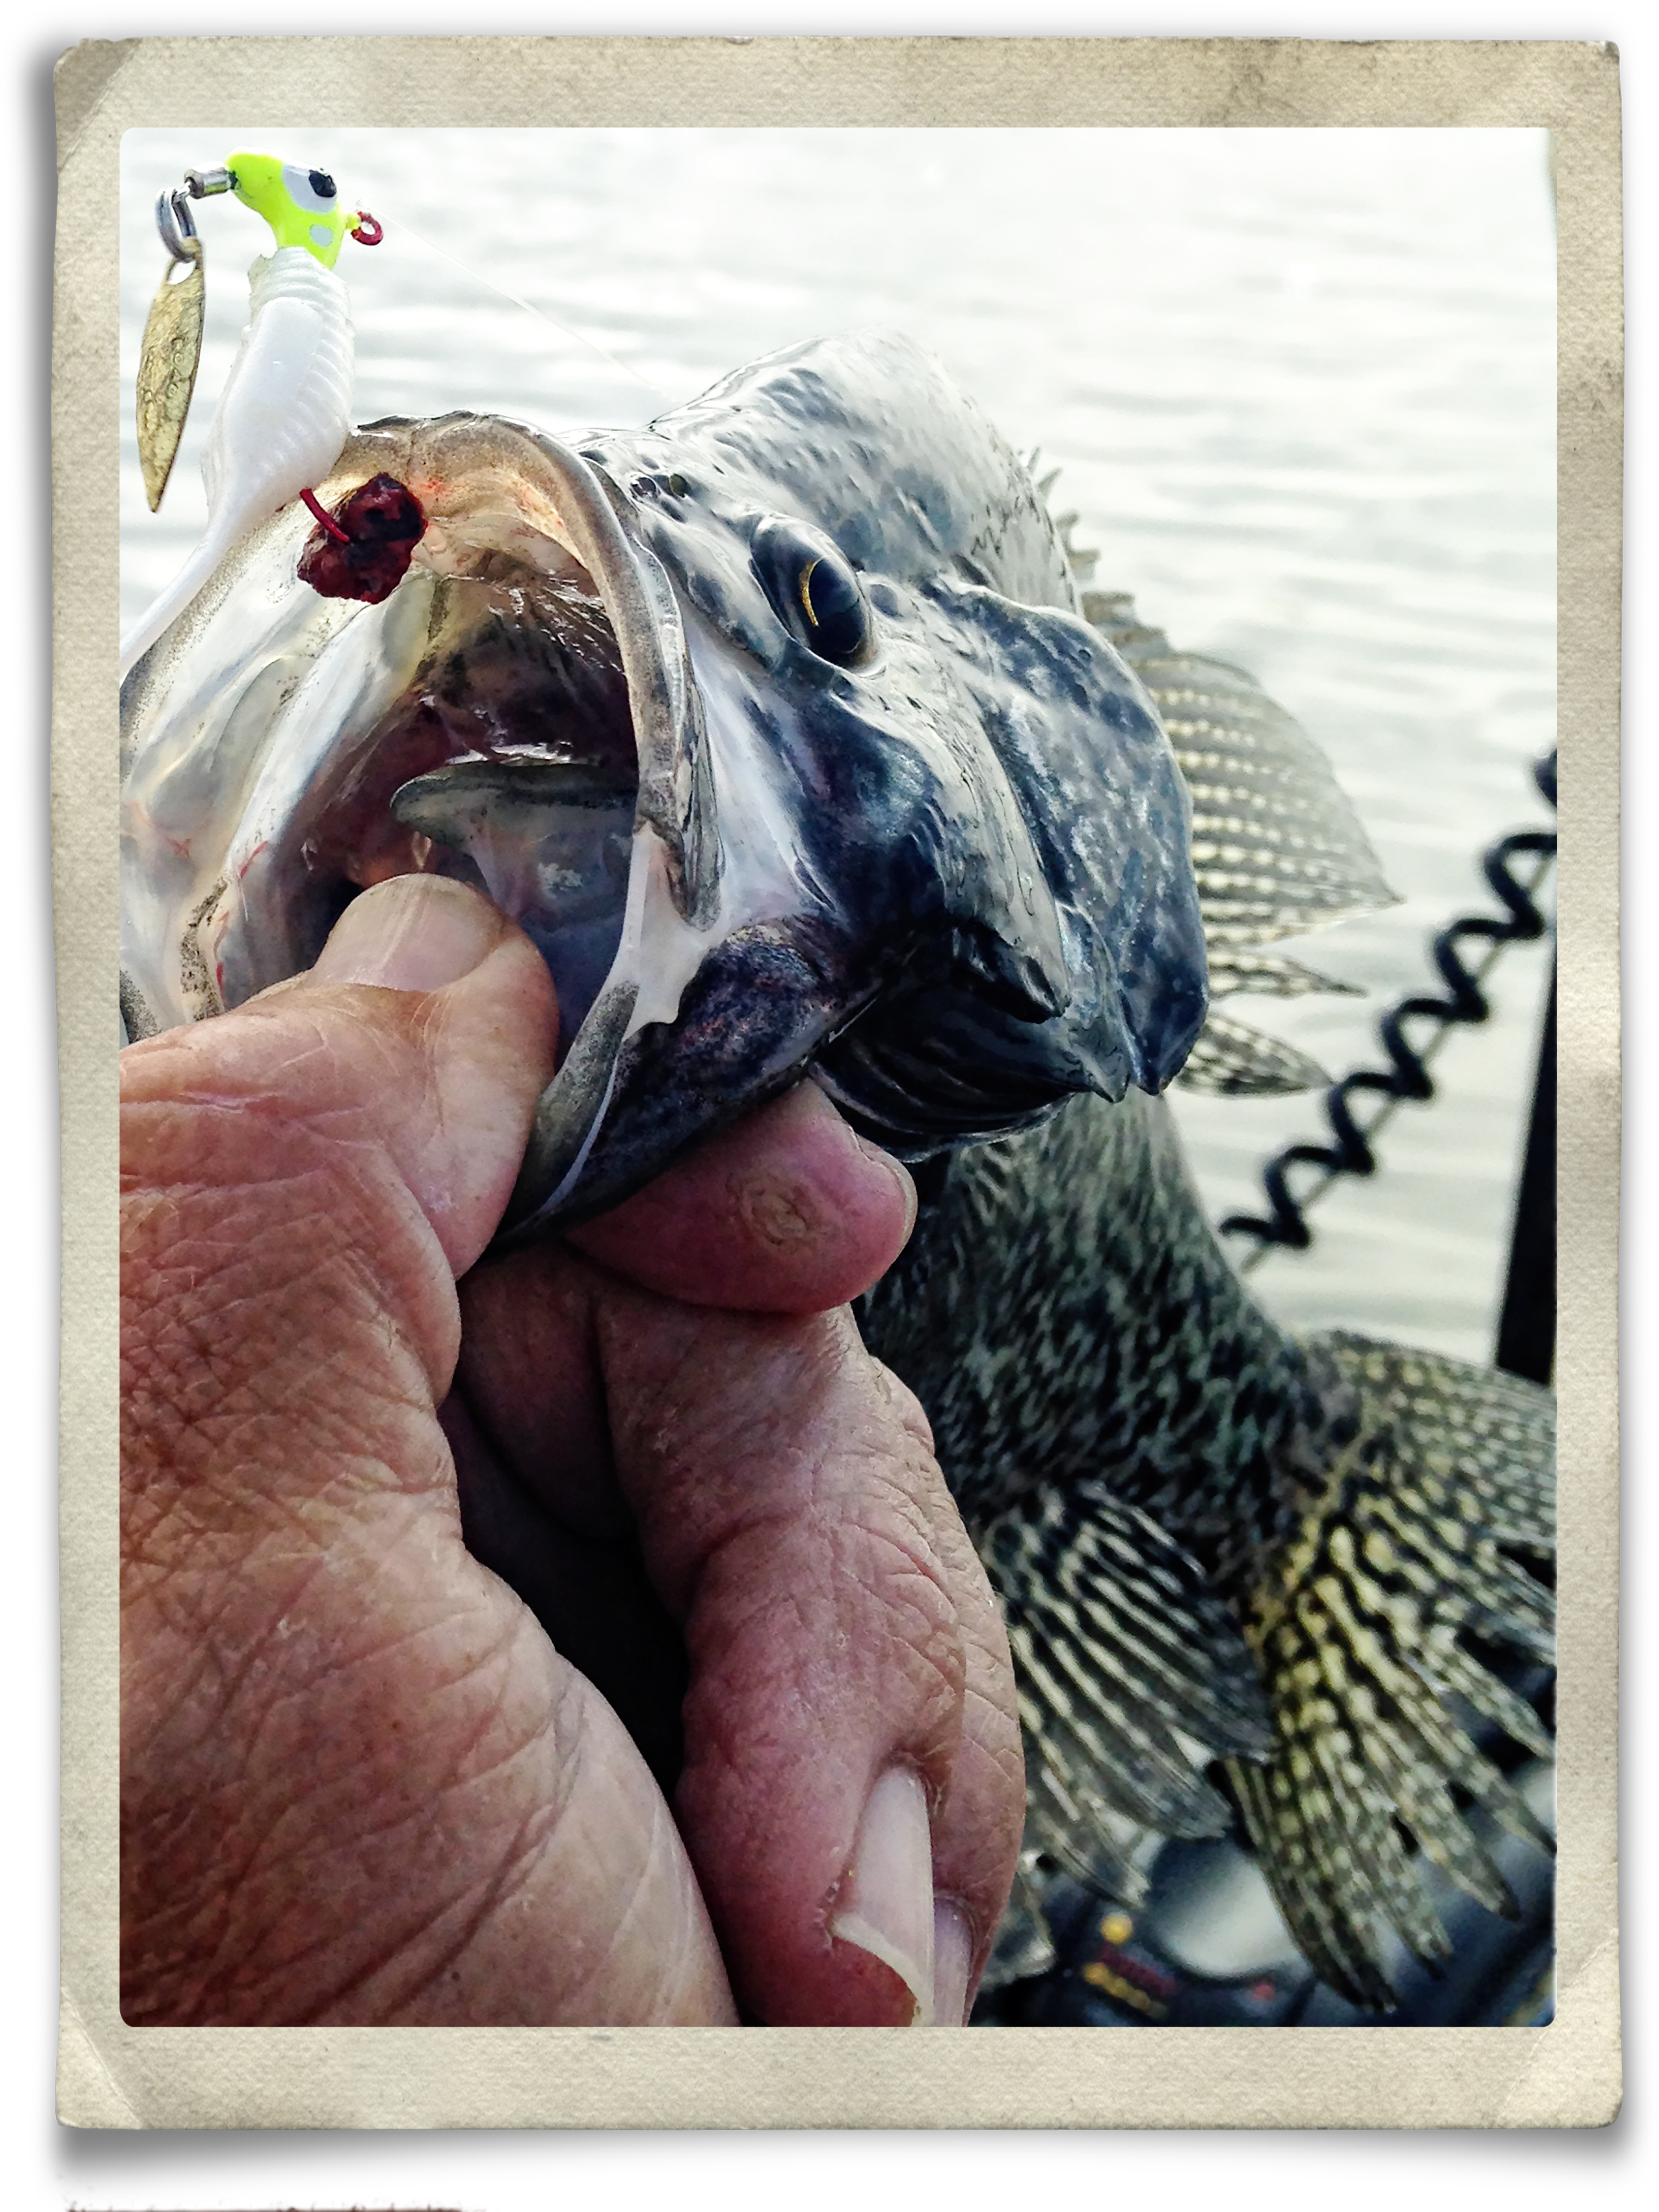 crappie-red-tipped-ss-pellet.jpg